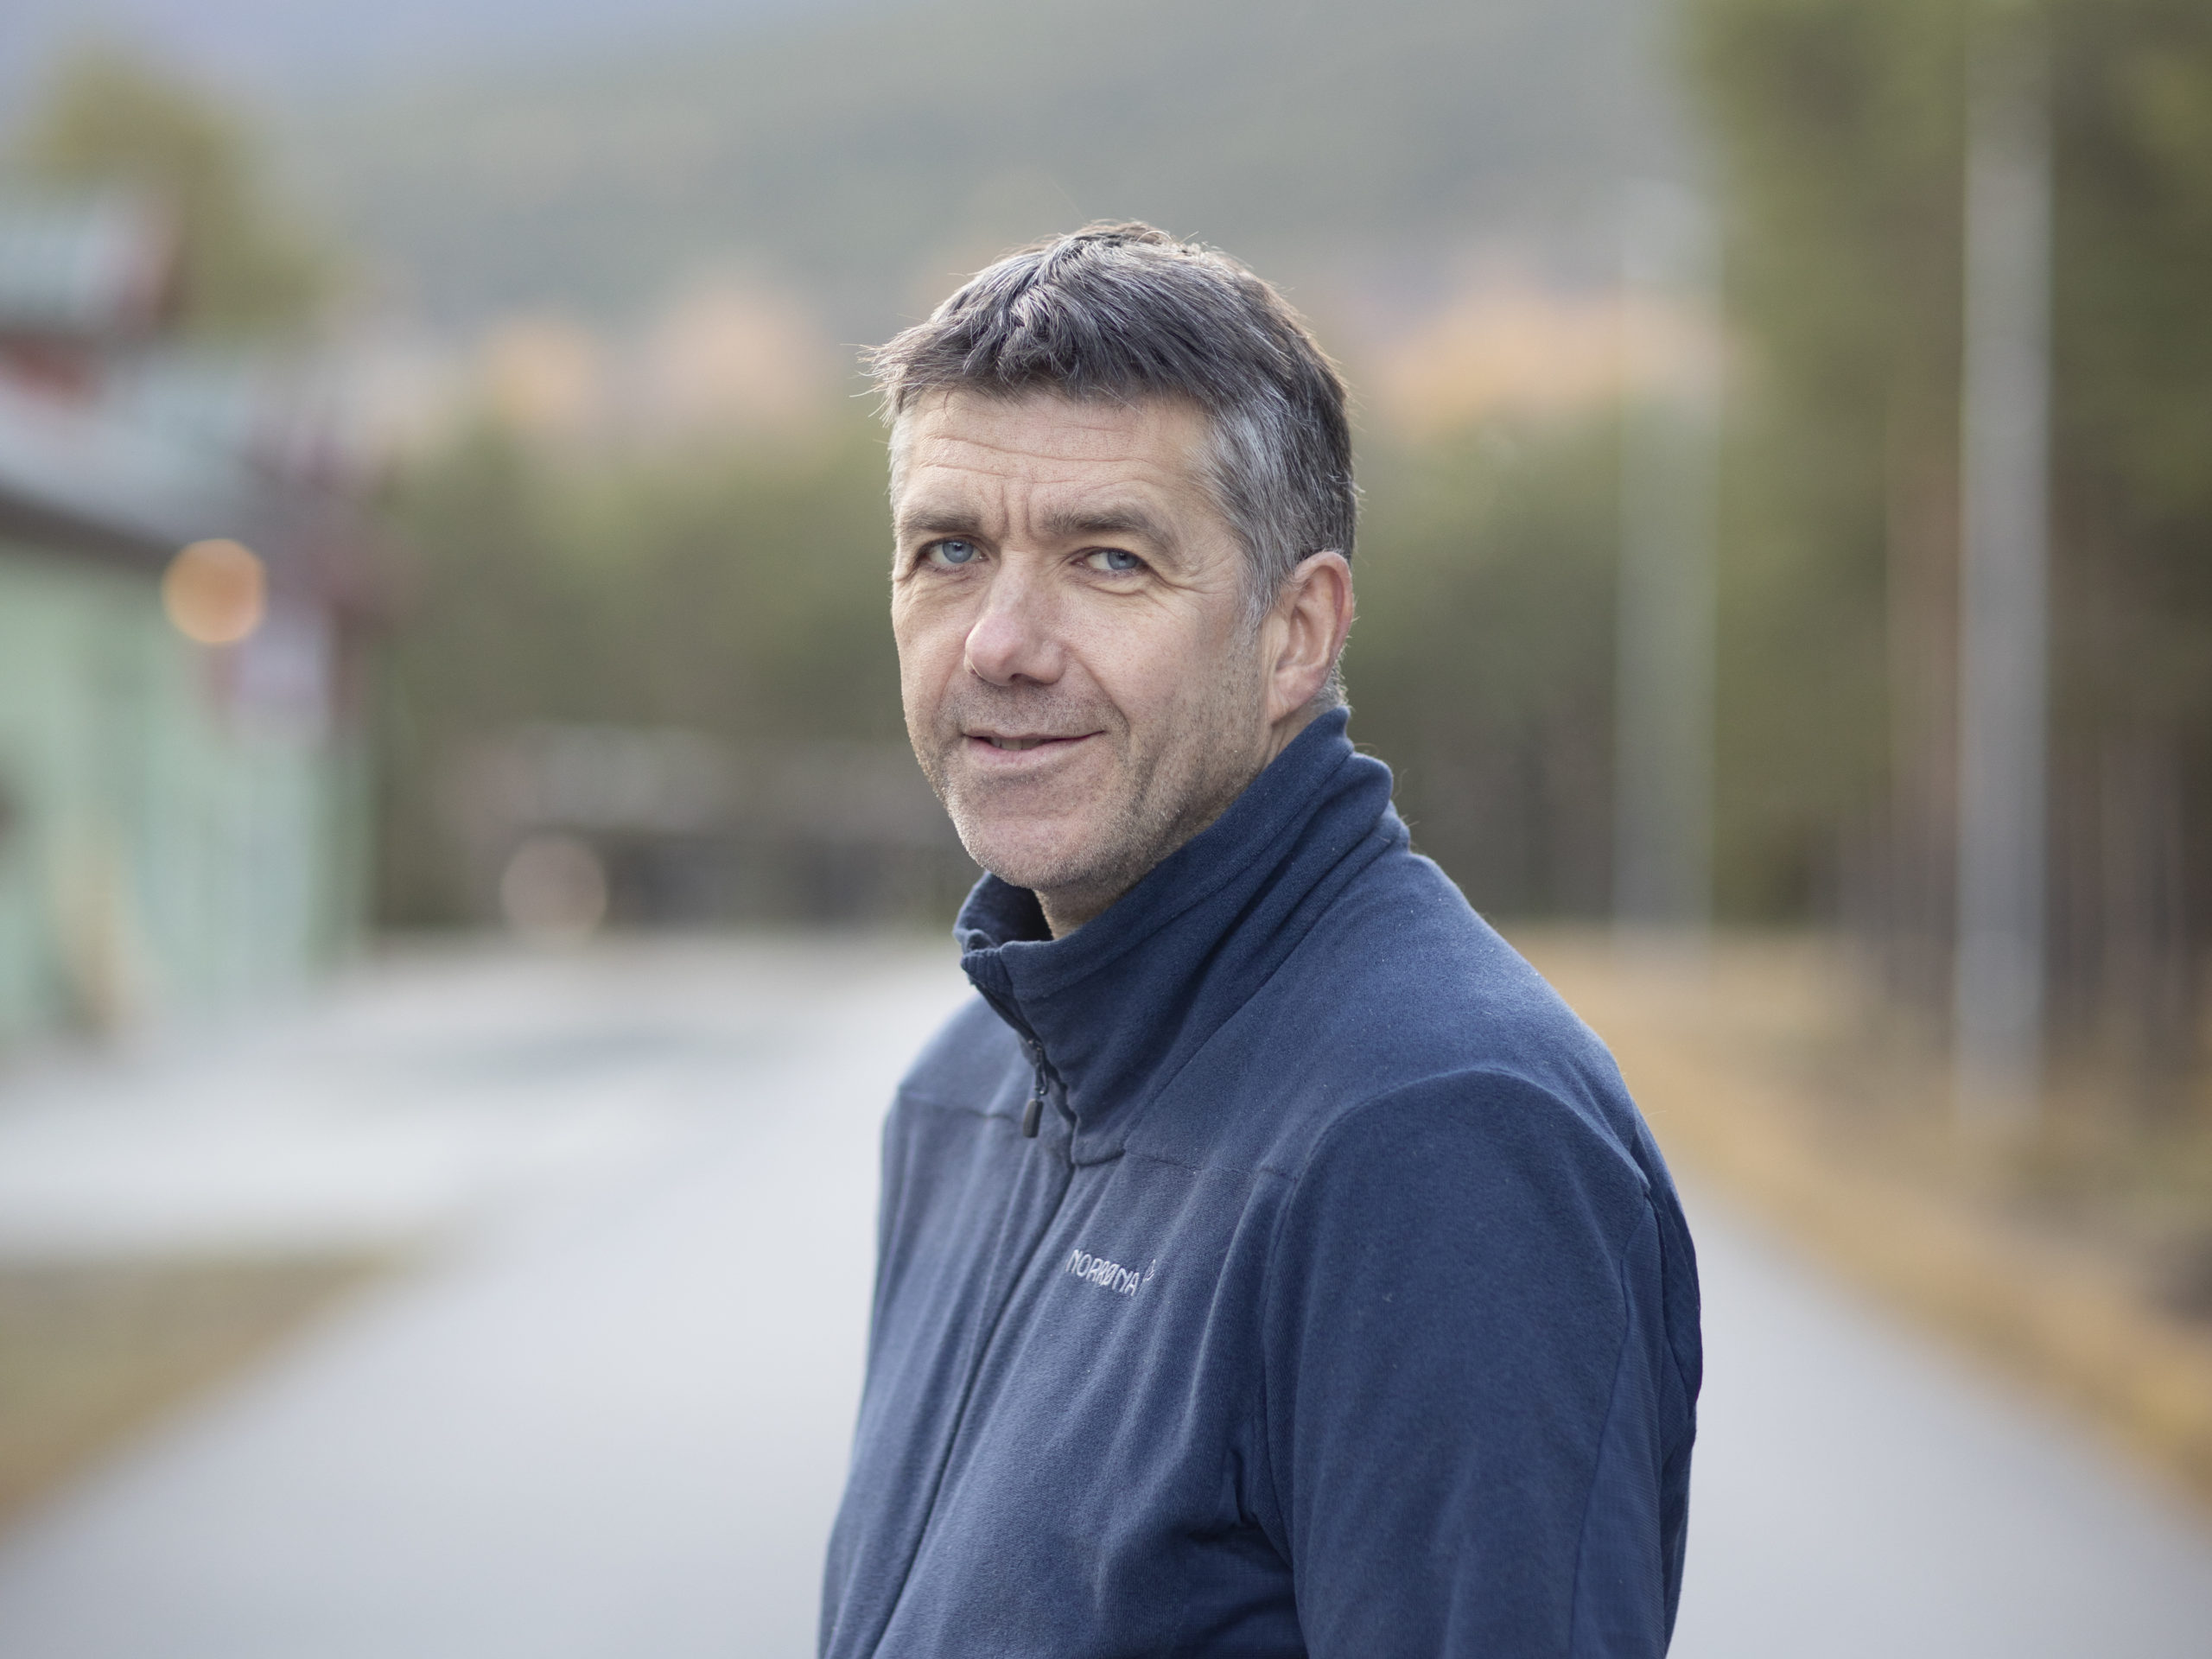 Terje Bosmen - profile photo